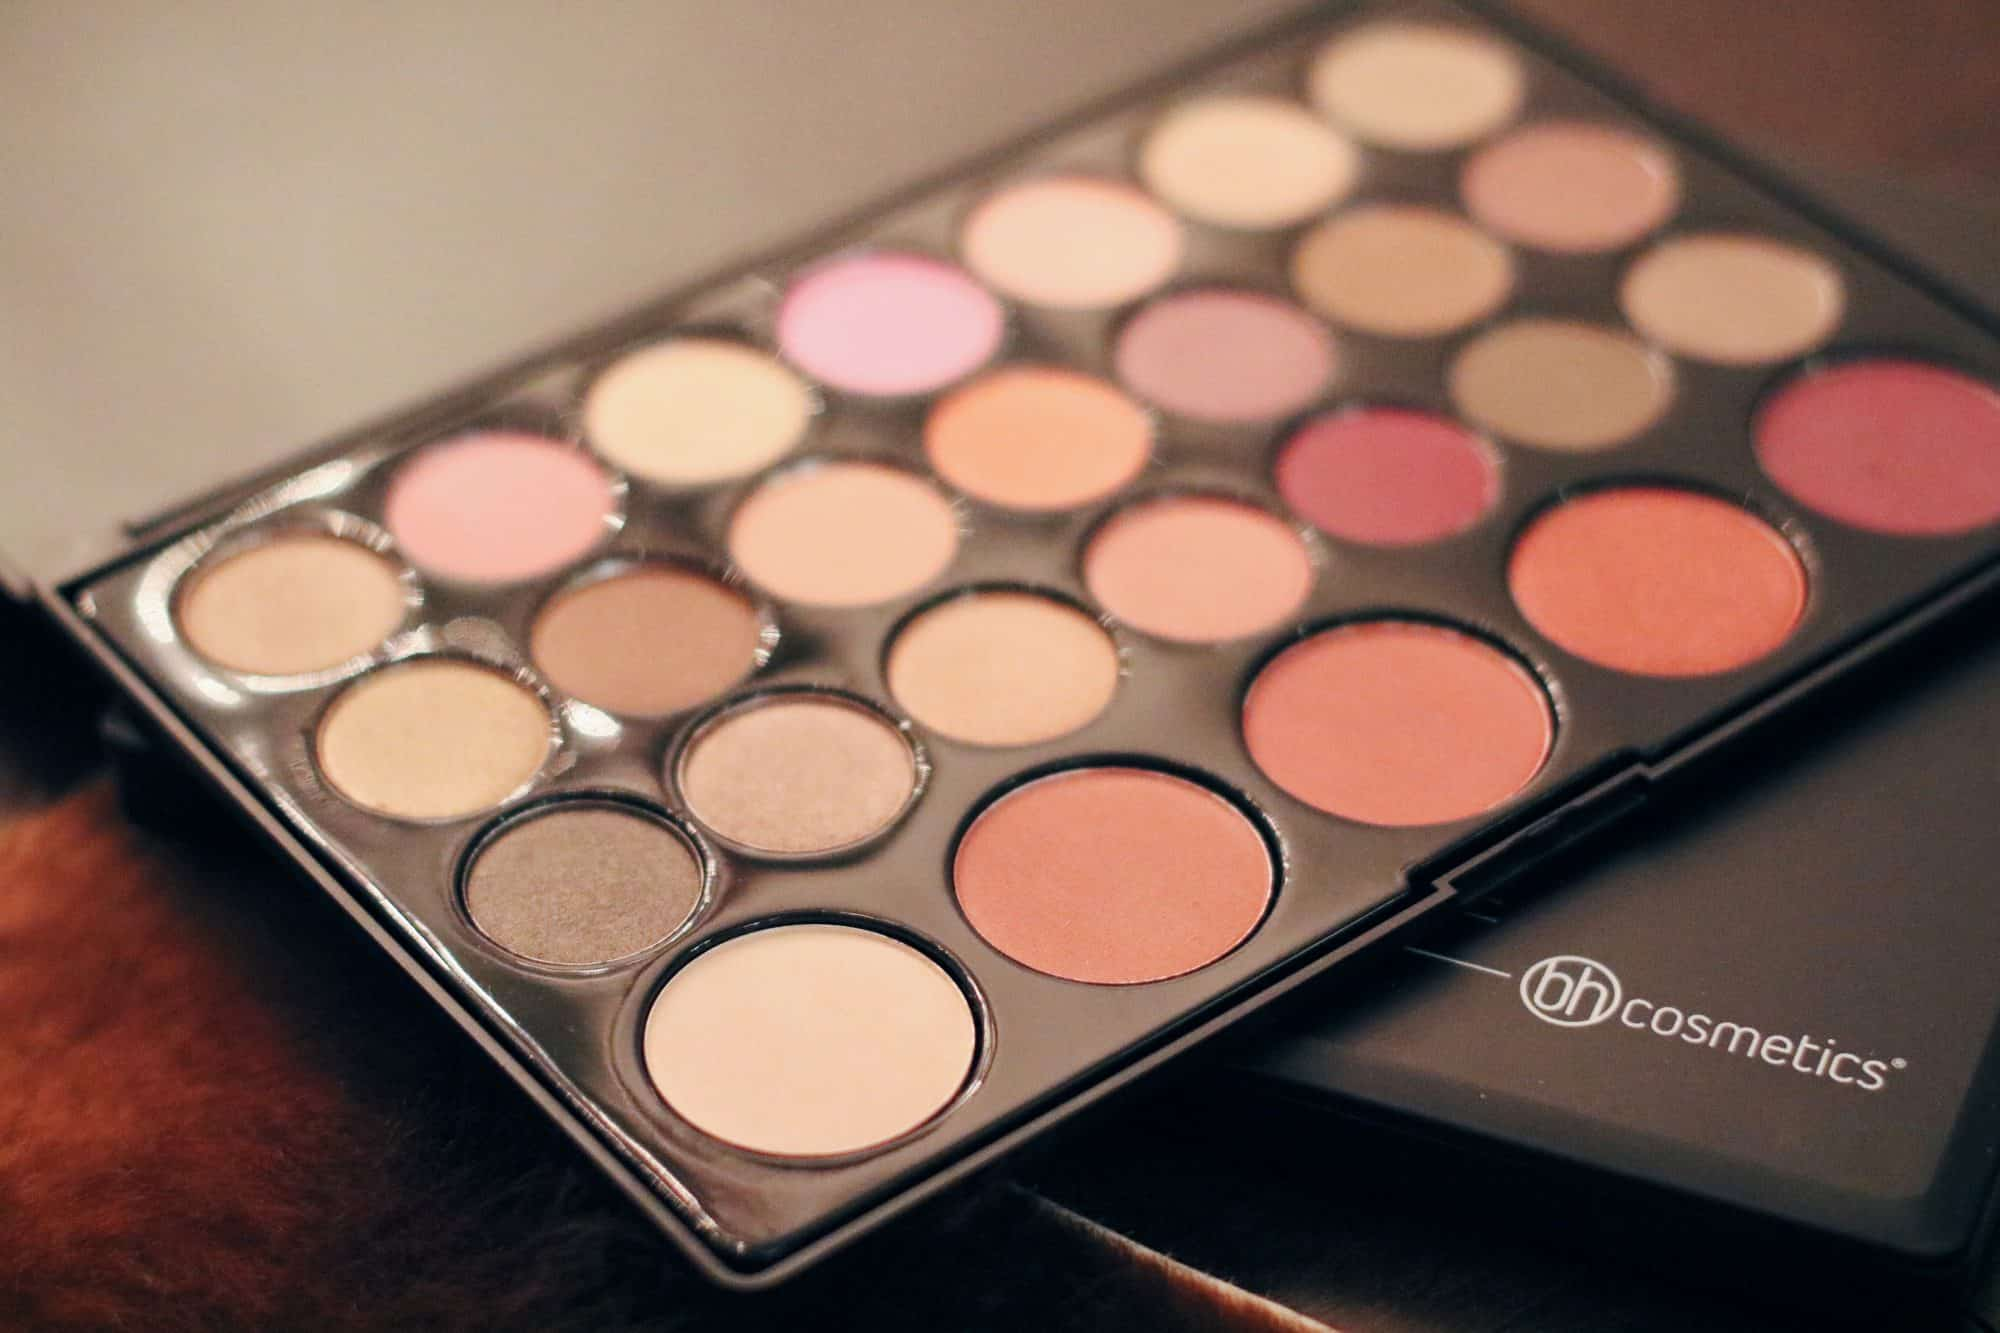 Bh Cosmetics  Neutral Color Eyeshadow Palette Review